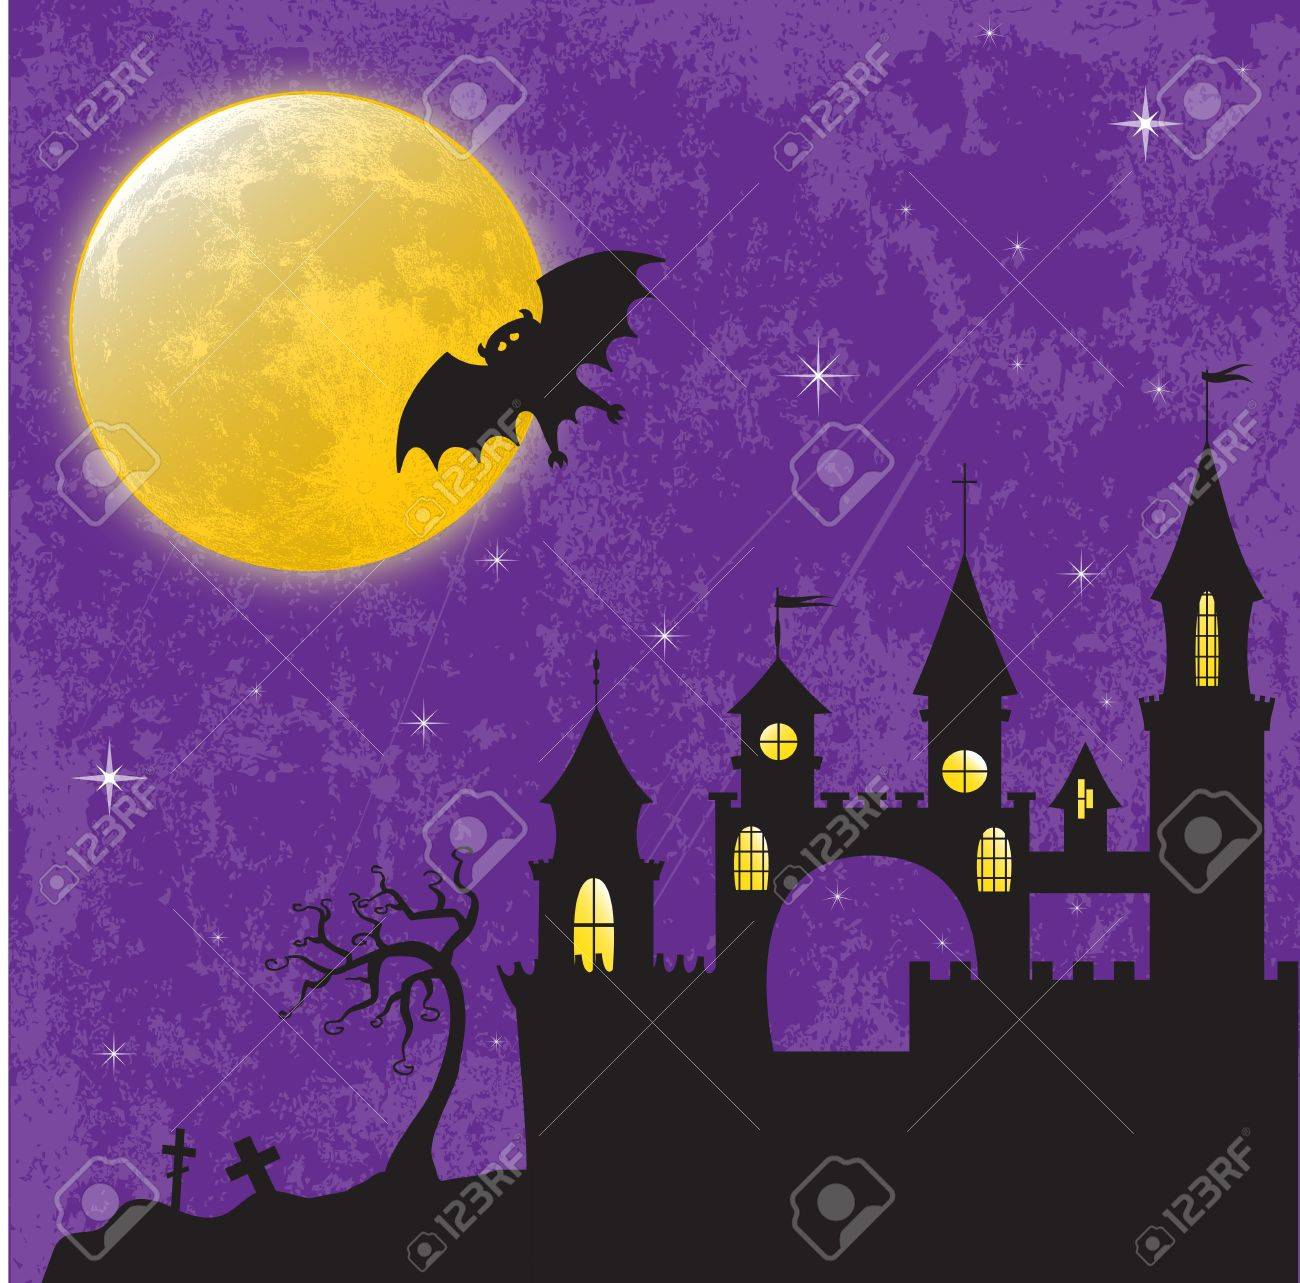 Gothic Castle In The Moonlight Illustration For Halloween Design Stock Vector